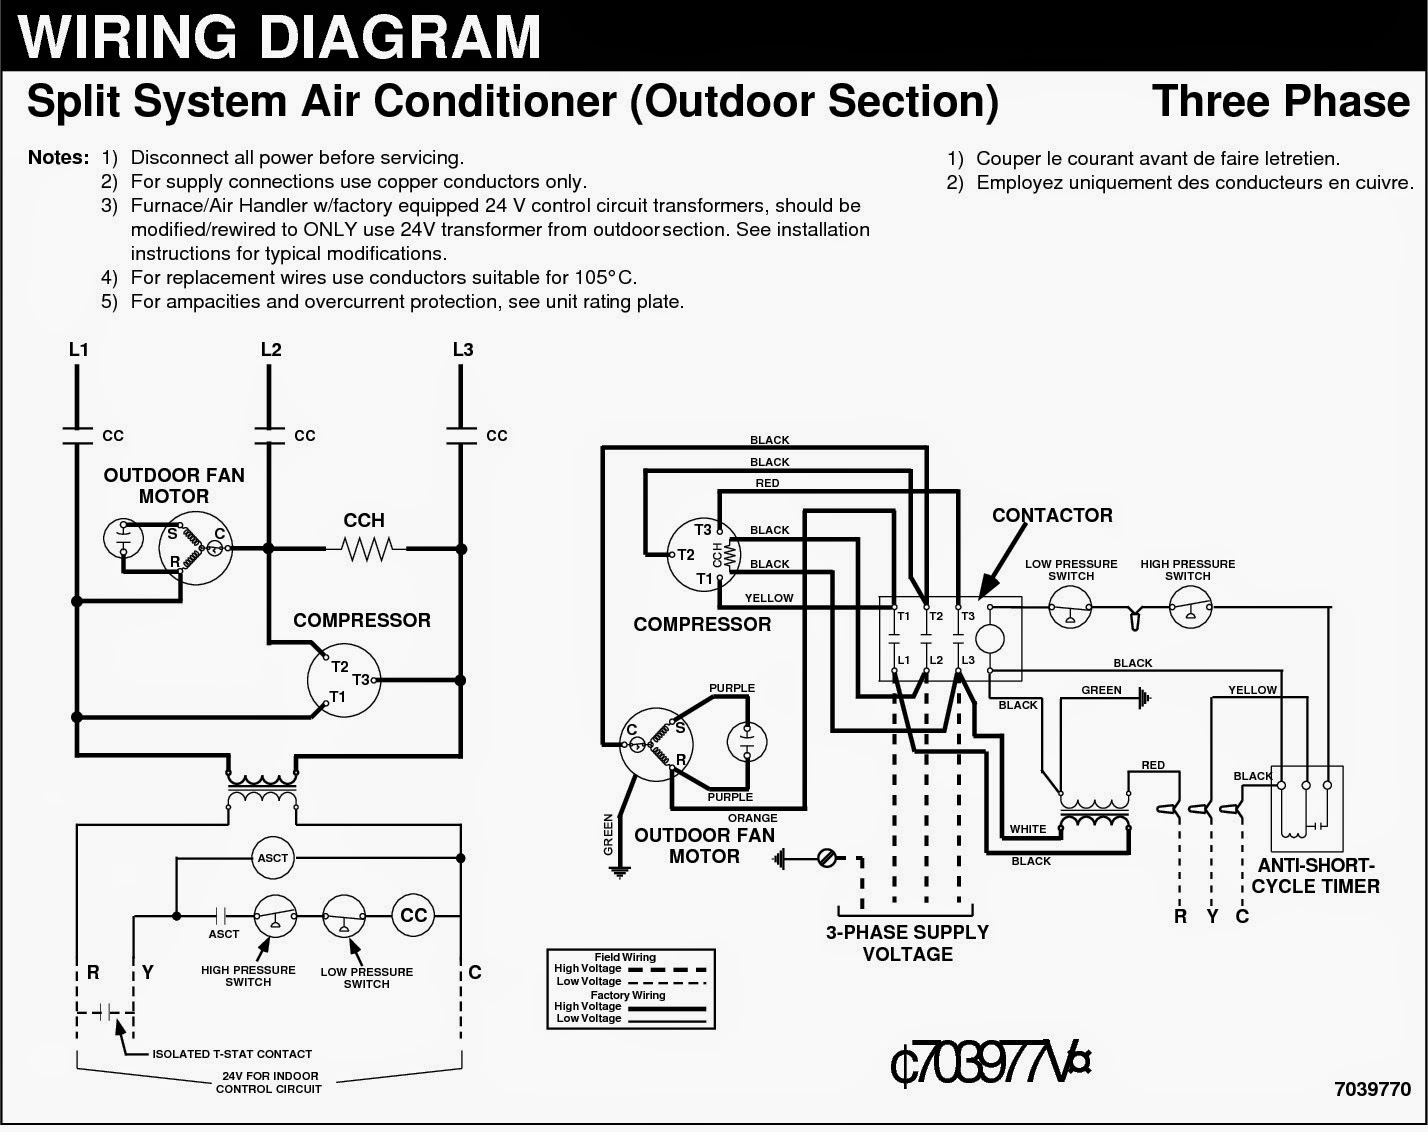 3+phase electrical wiring diagrams for air conditioning systems part two electrical control wiring diagrams at soozxer.org